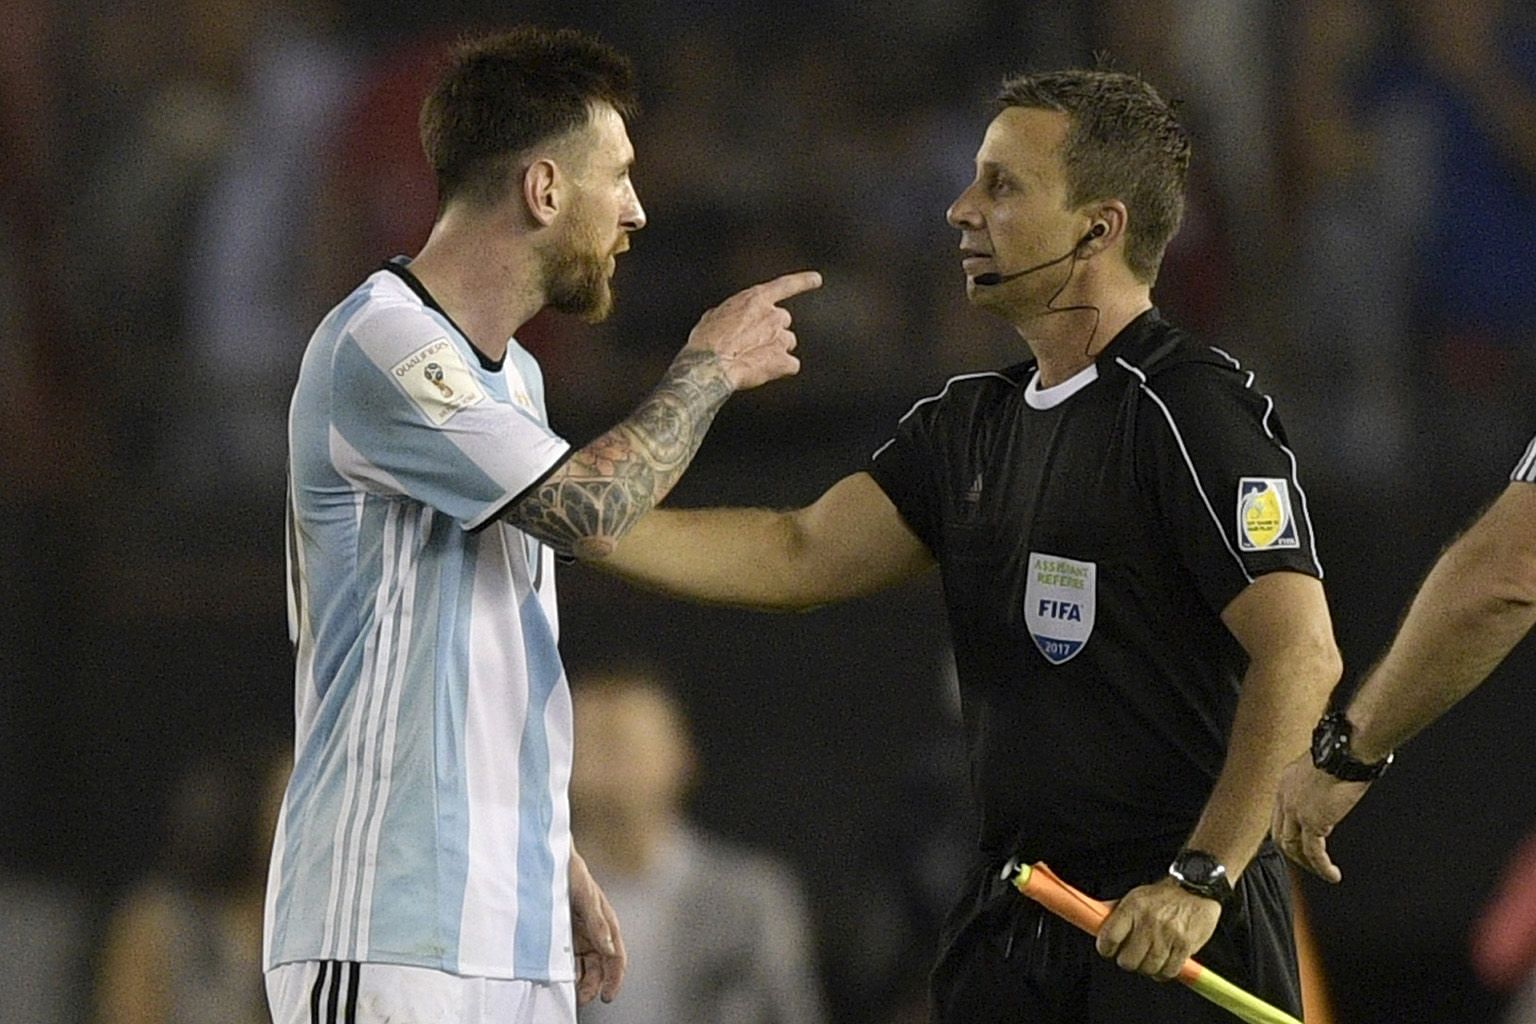 Argentina's Lionel Messi arguing with linesman Emerson Augusto de Carvalho at the end of the qualifier against Chile. He has been banned for four matches.